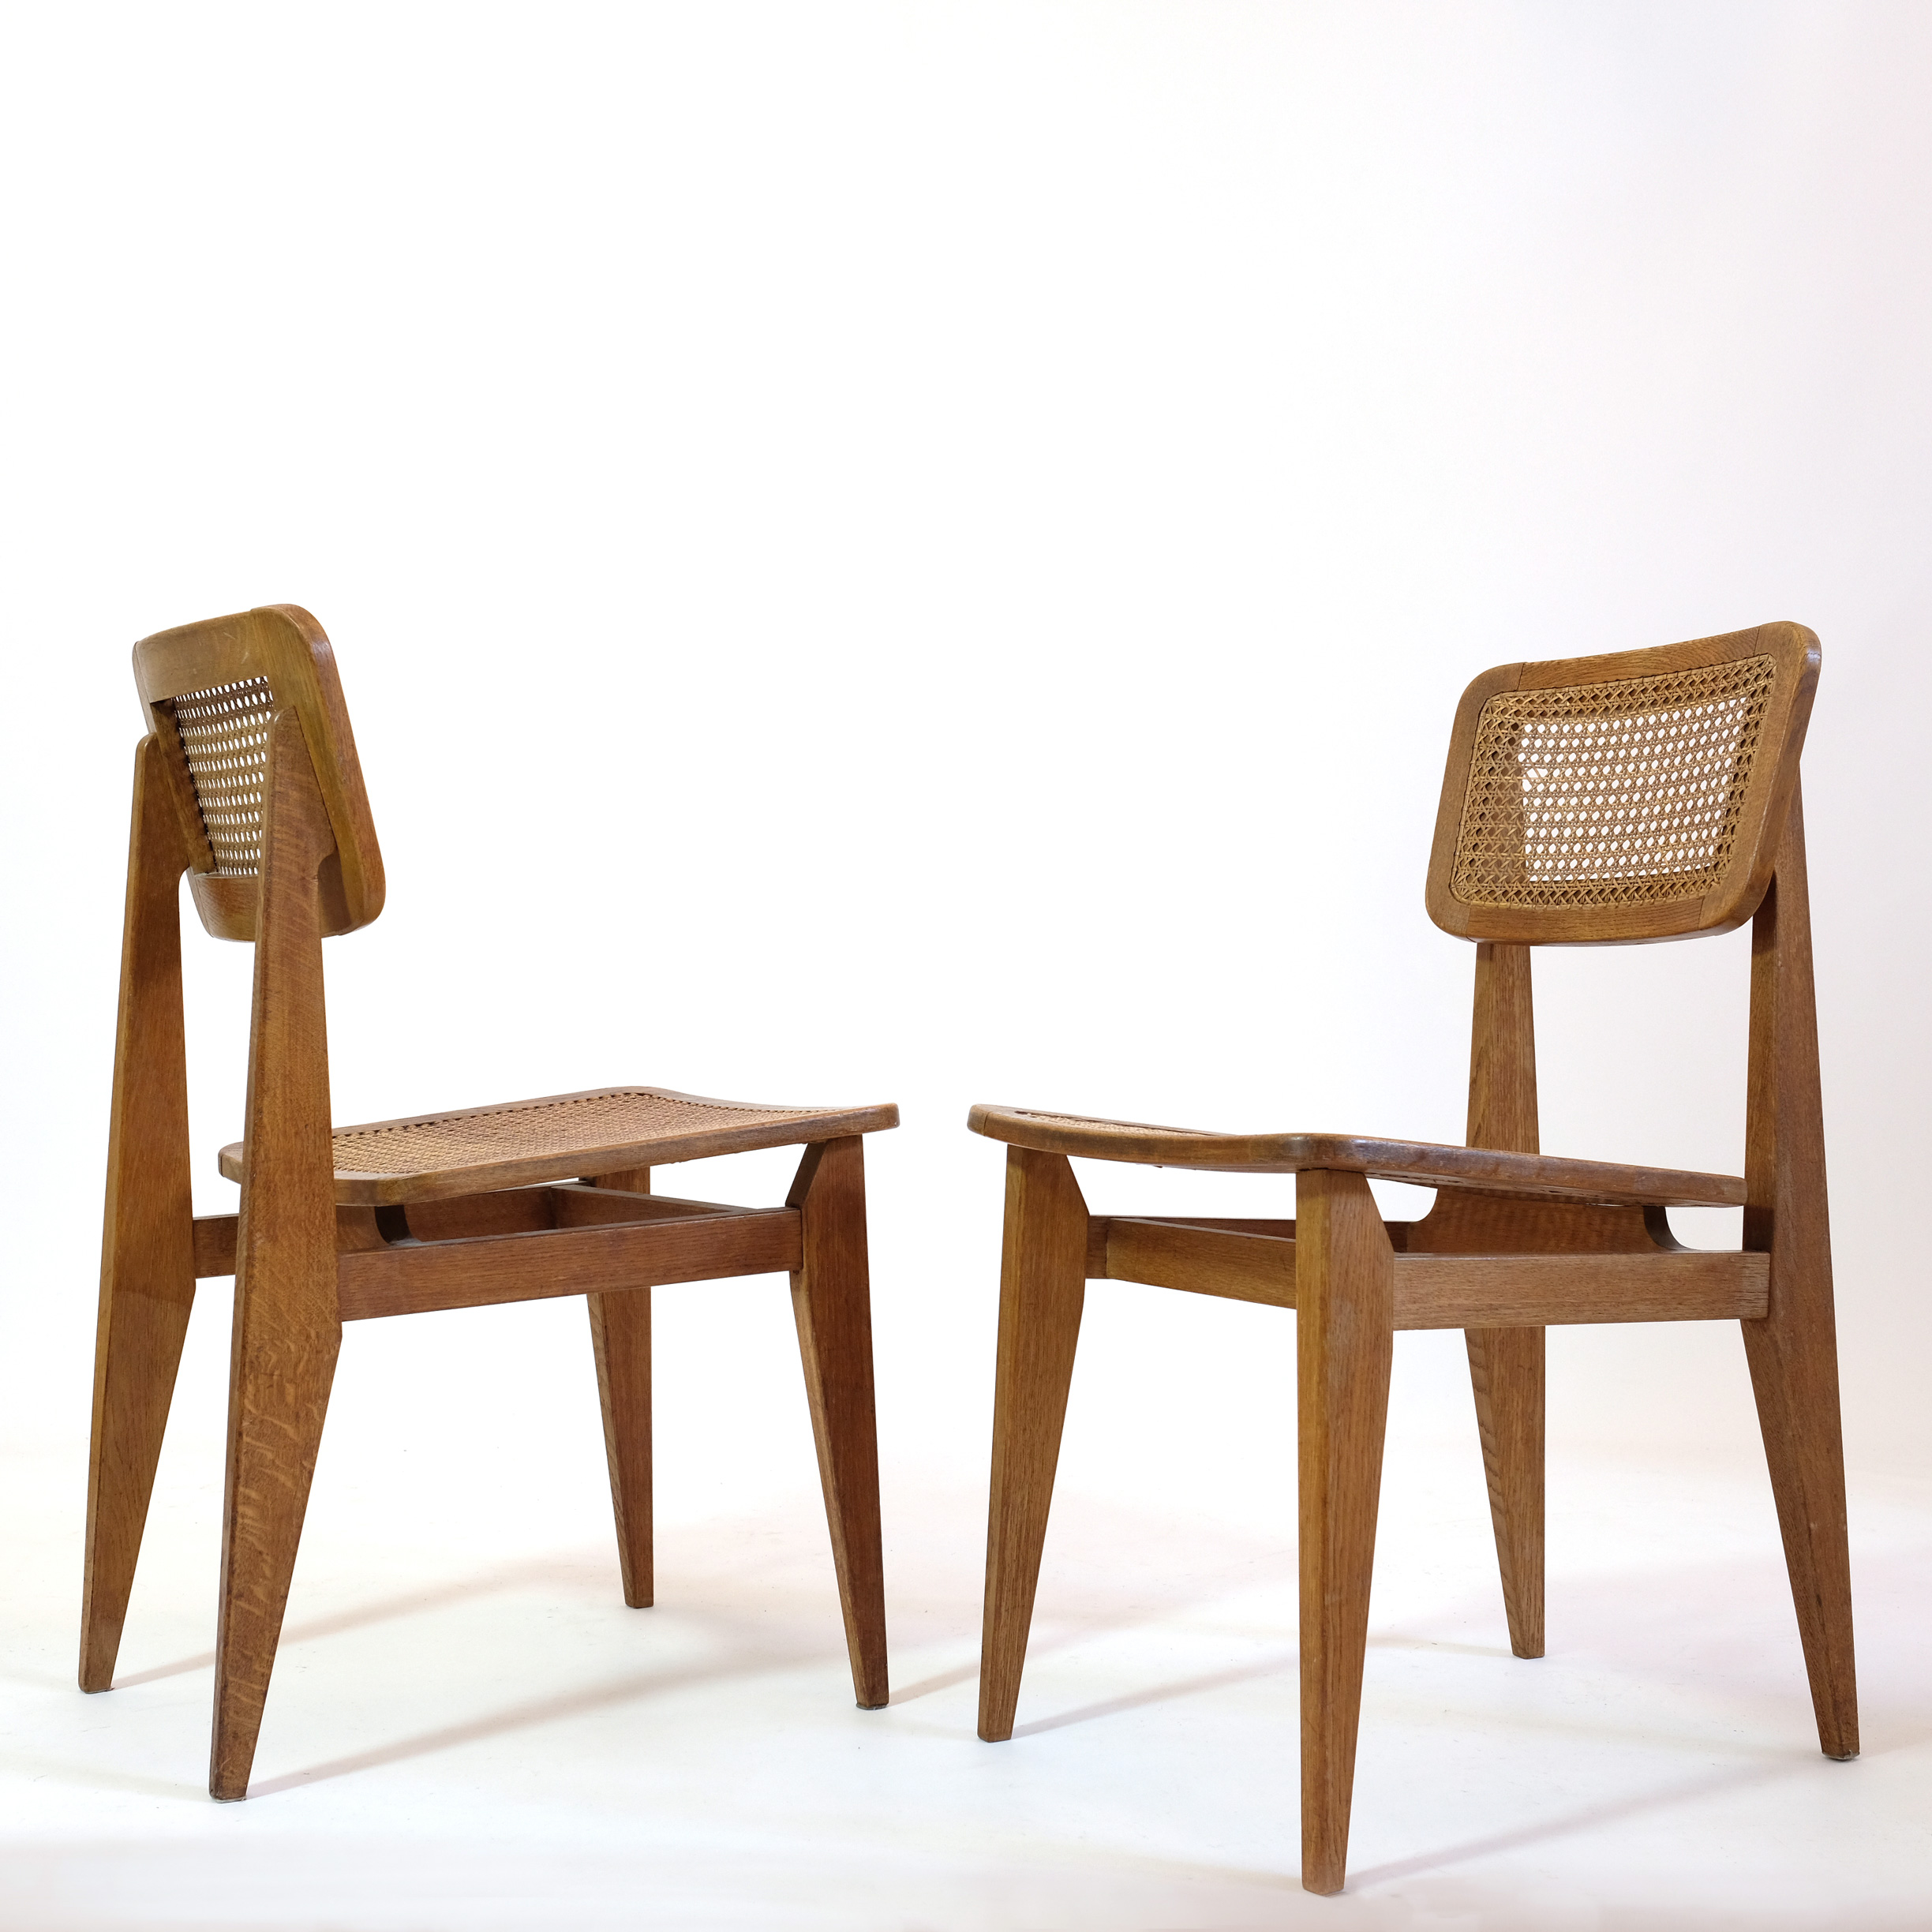 Marcel Gascoin, pair of C cane chairs, ARHEC,1950's.